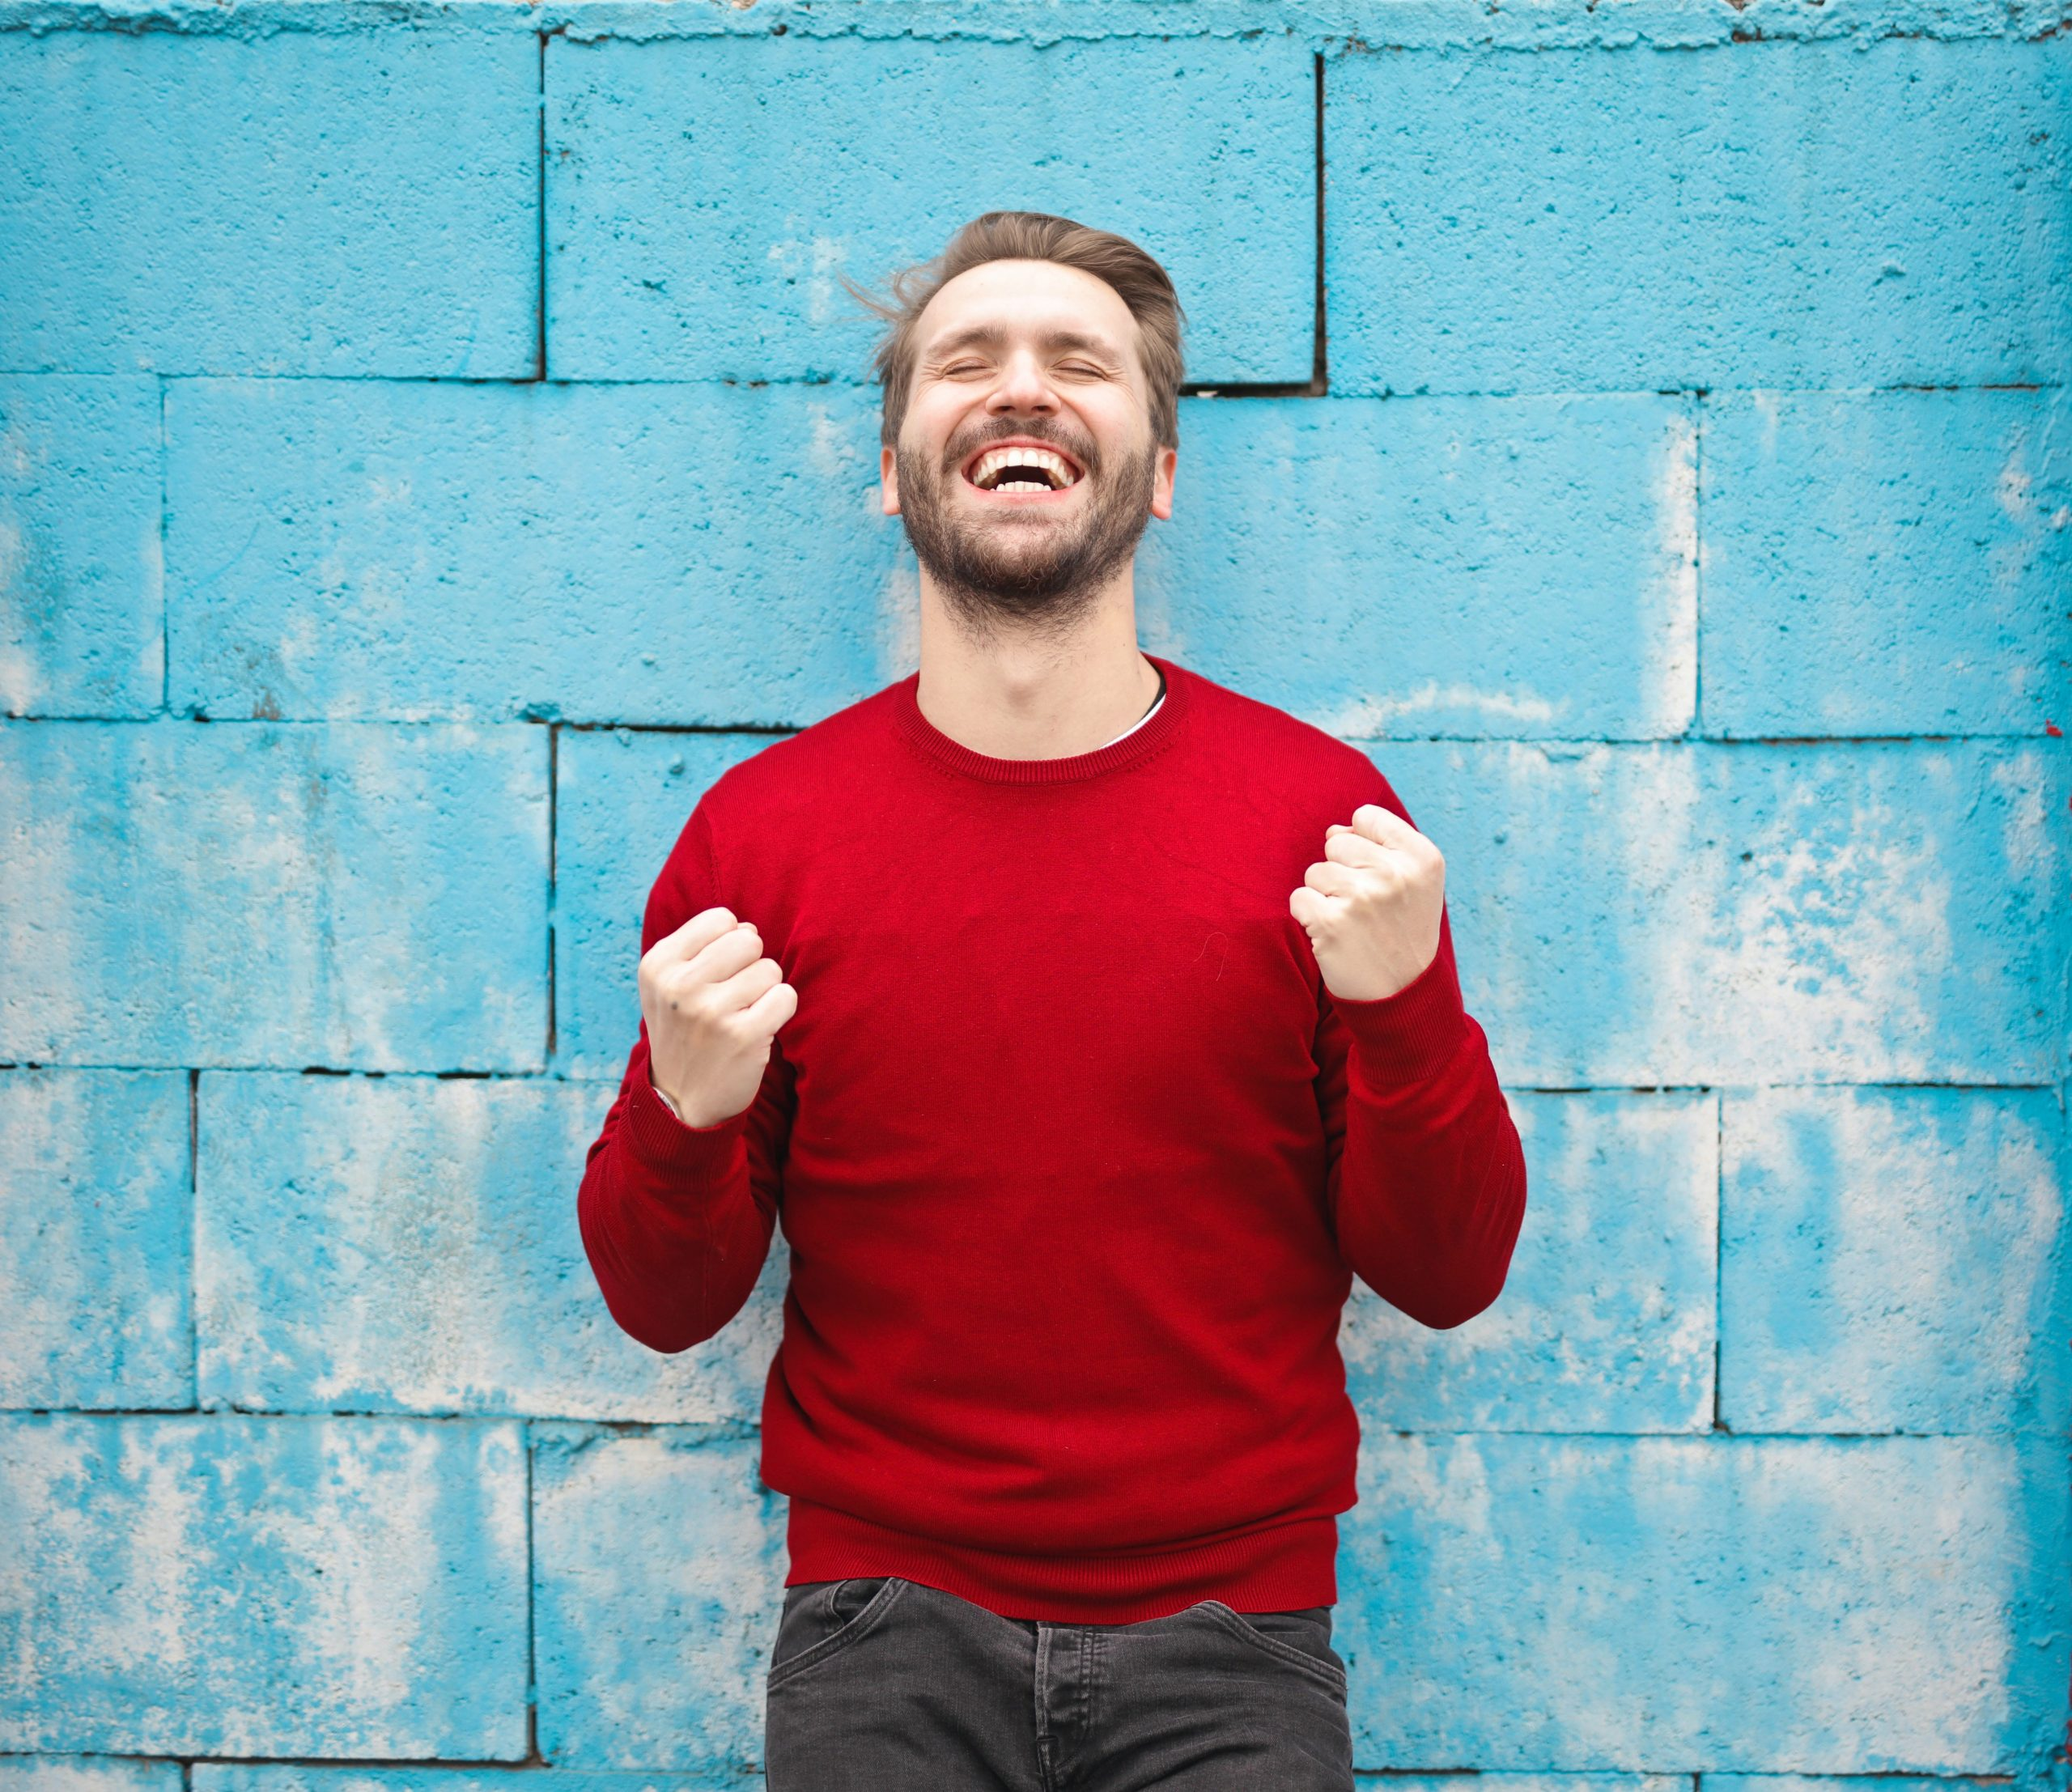 Man happy, satisfied smiling expression.